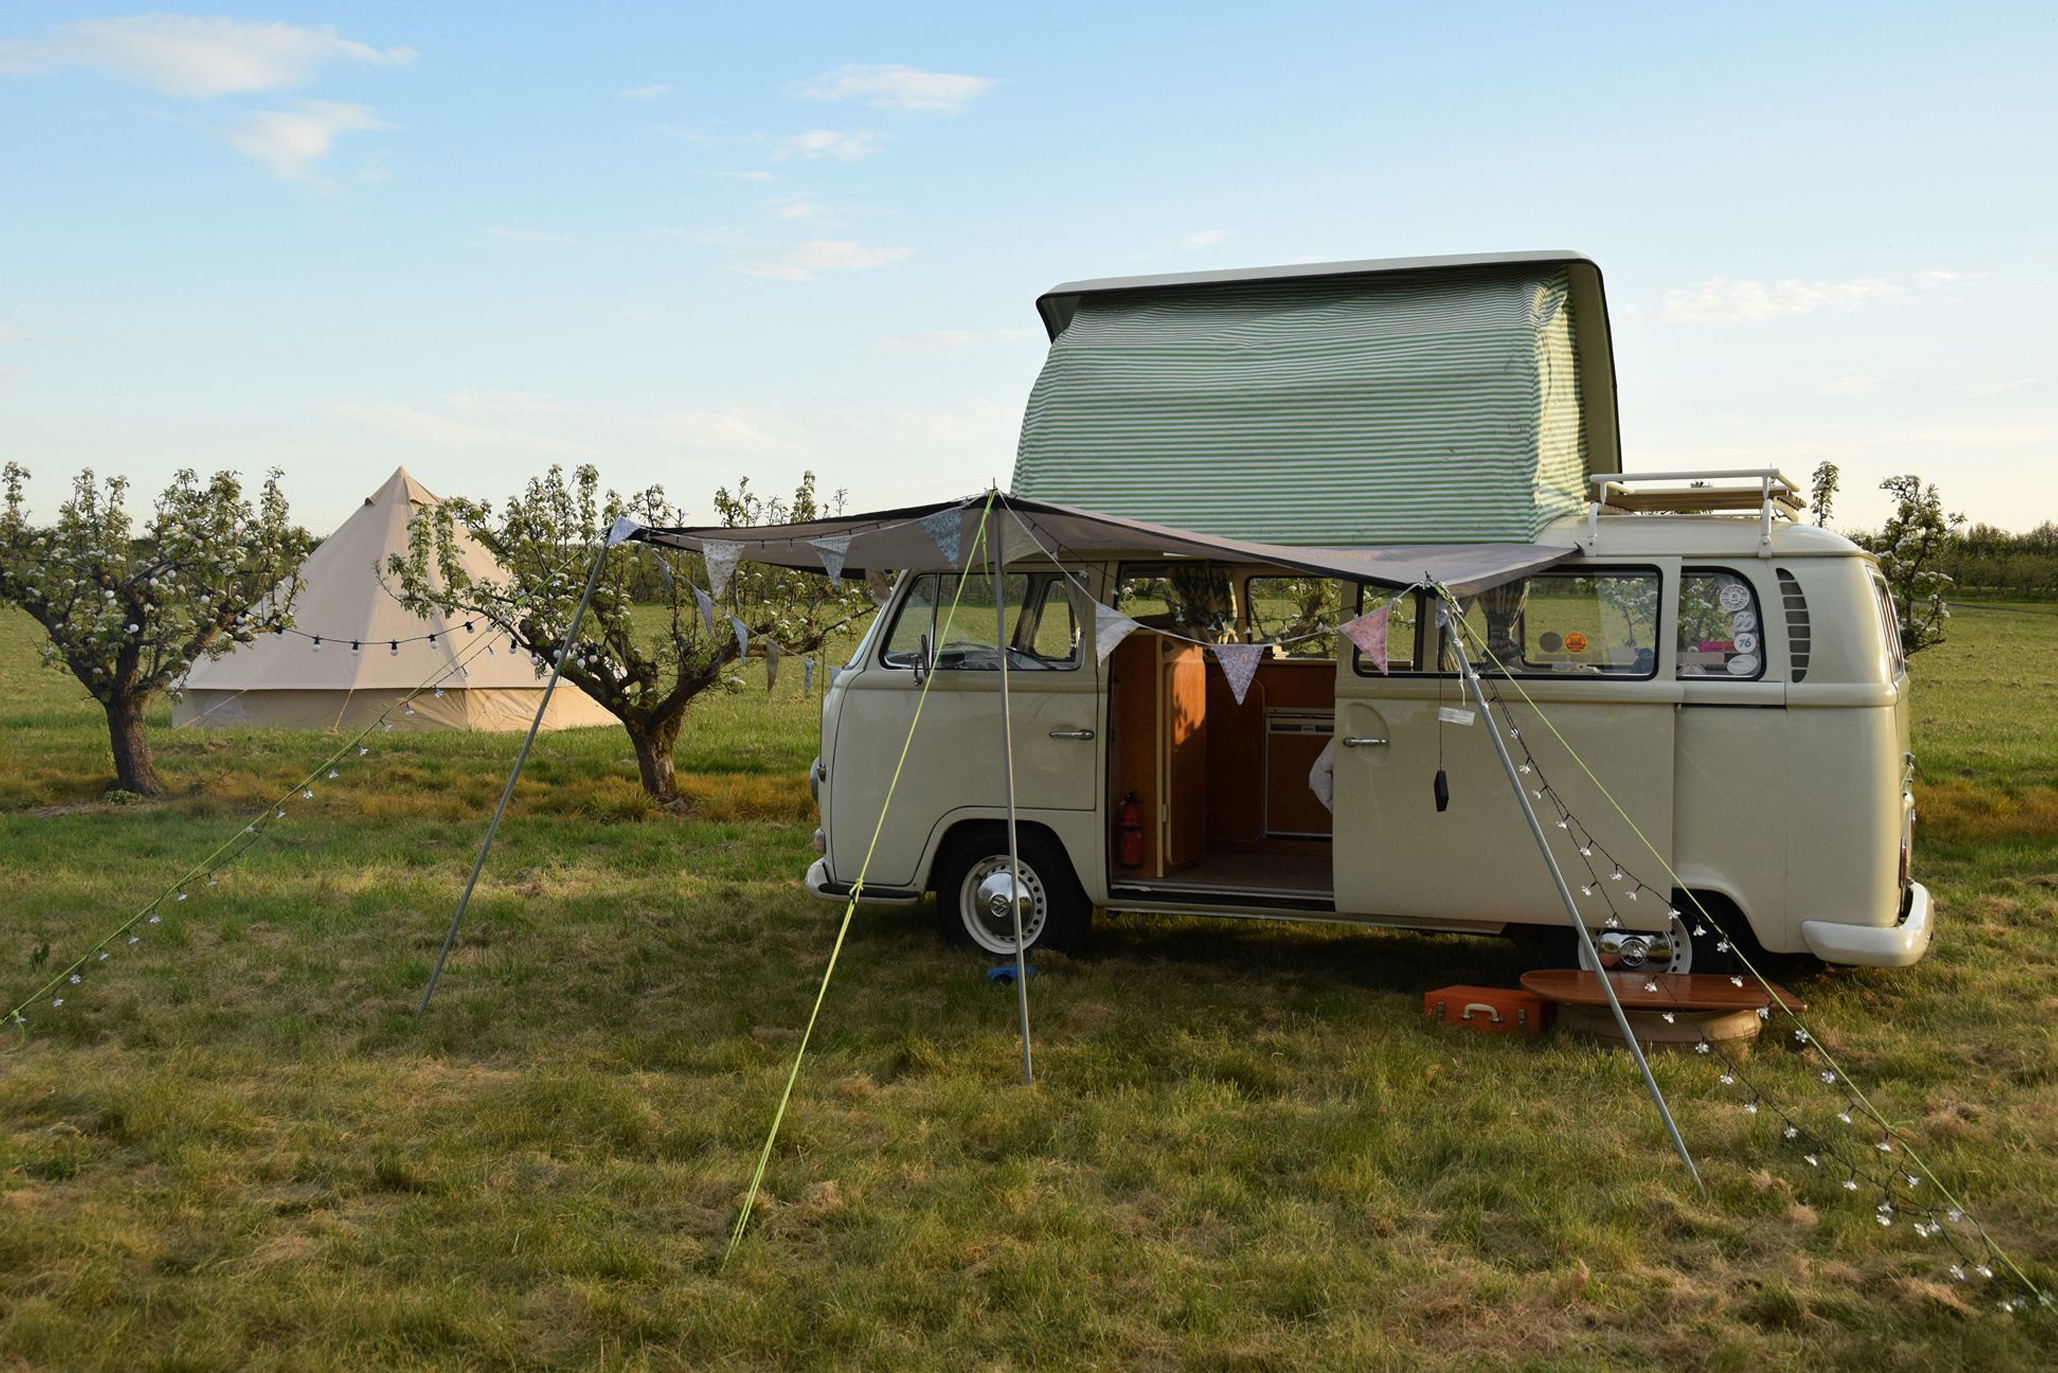 Image source:  Cool Camping   http://bit.ly/2JZs96n